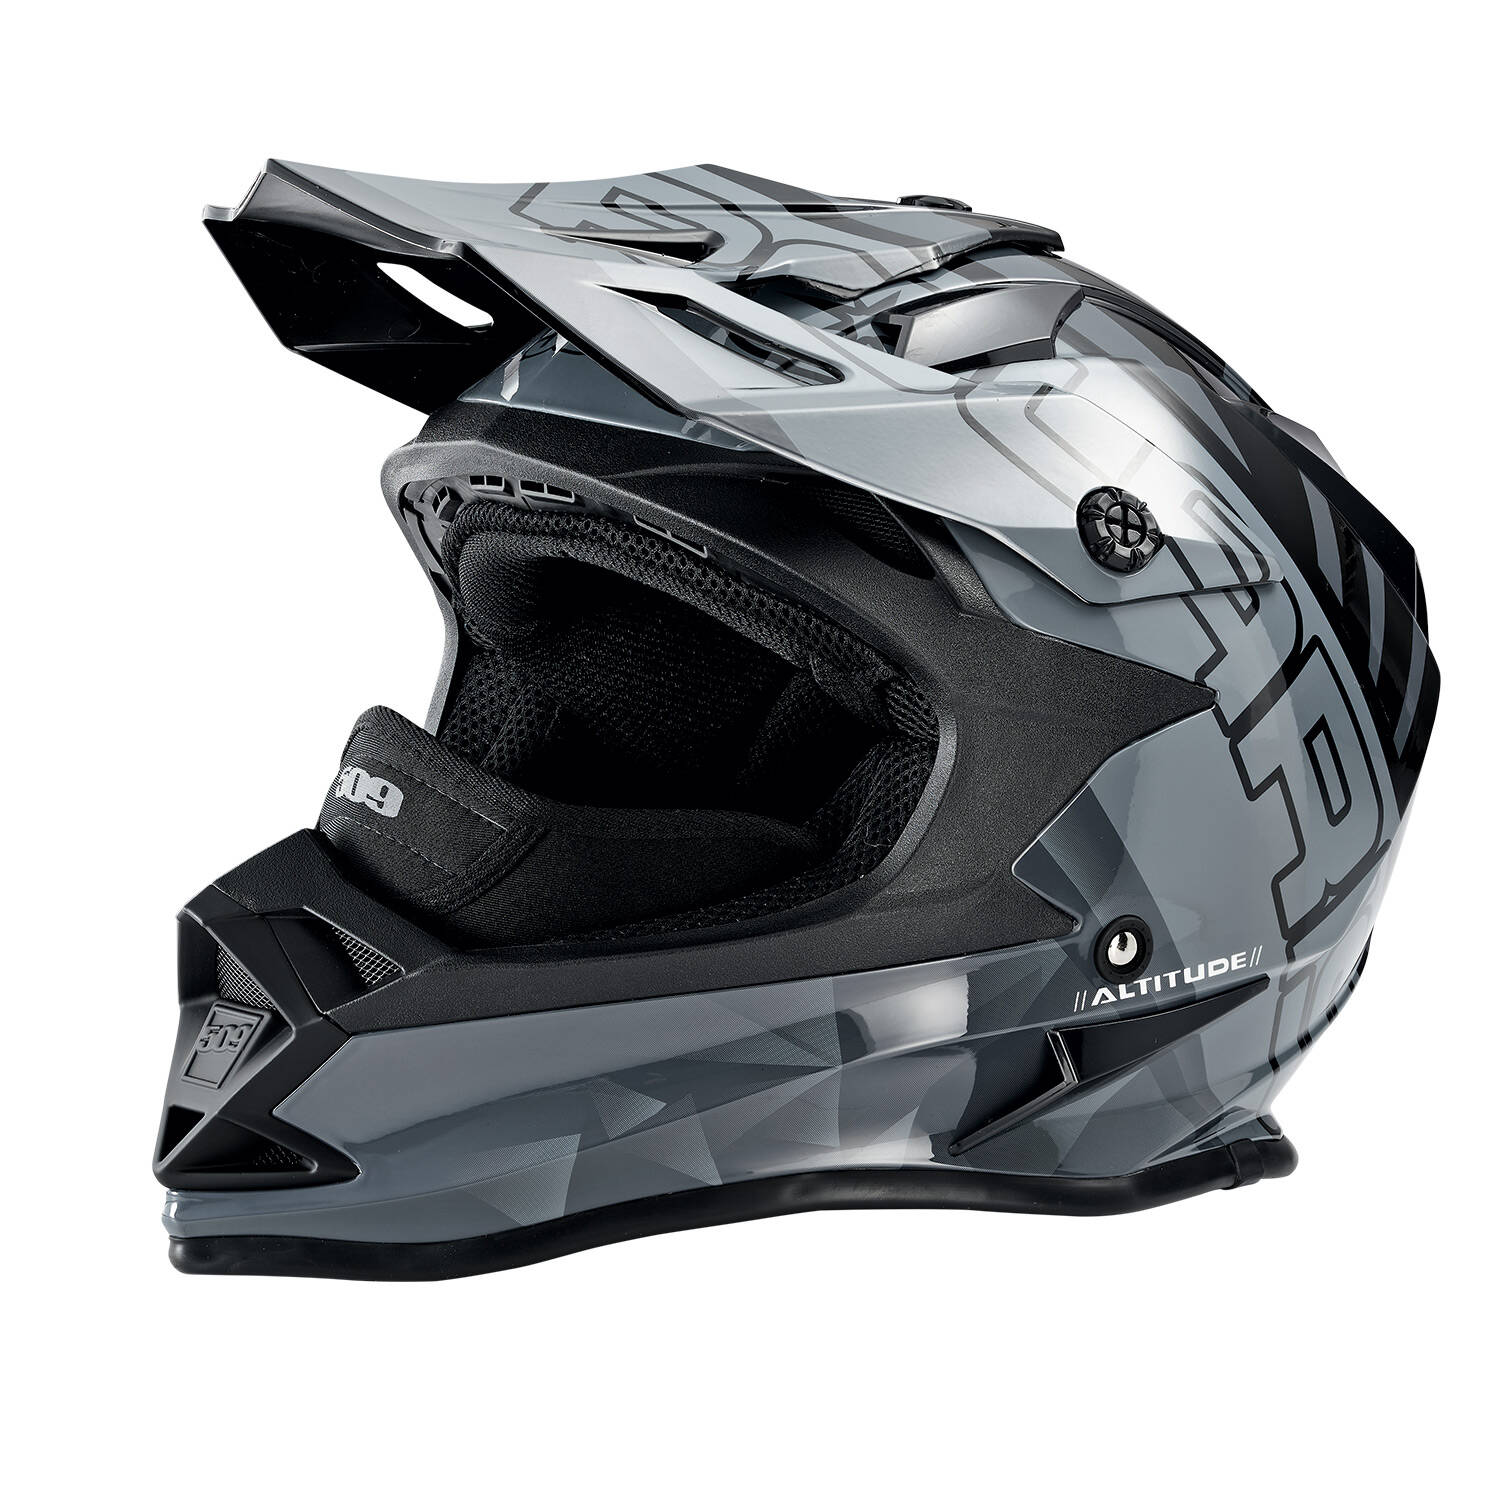 509® Altitude Adult Moto Helmet with Camera Mount, Gray